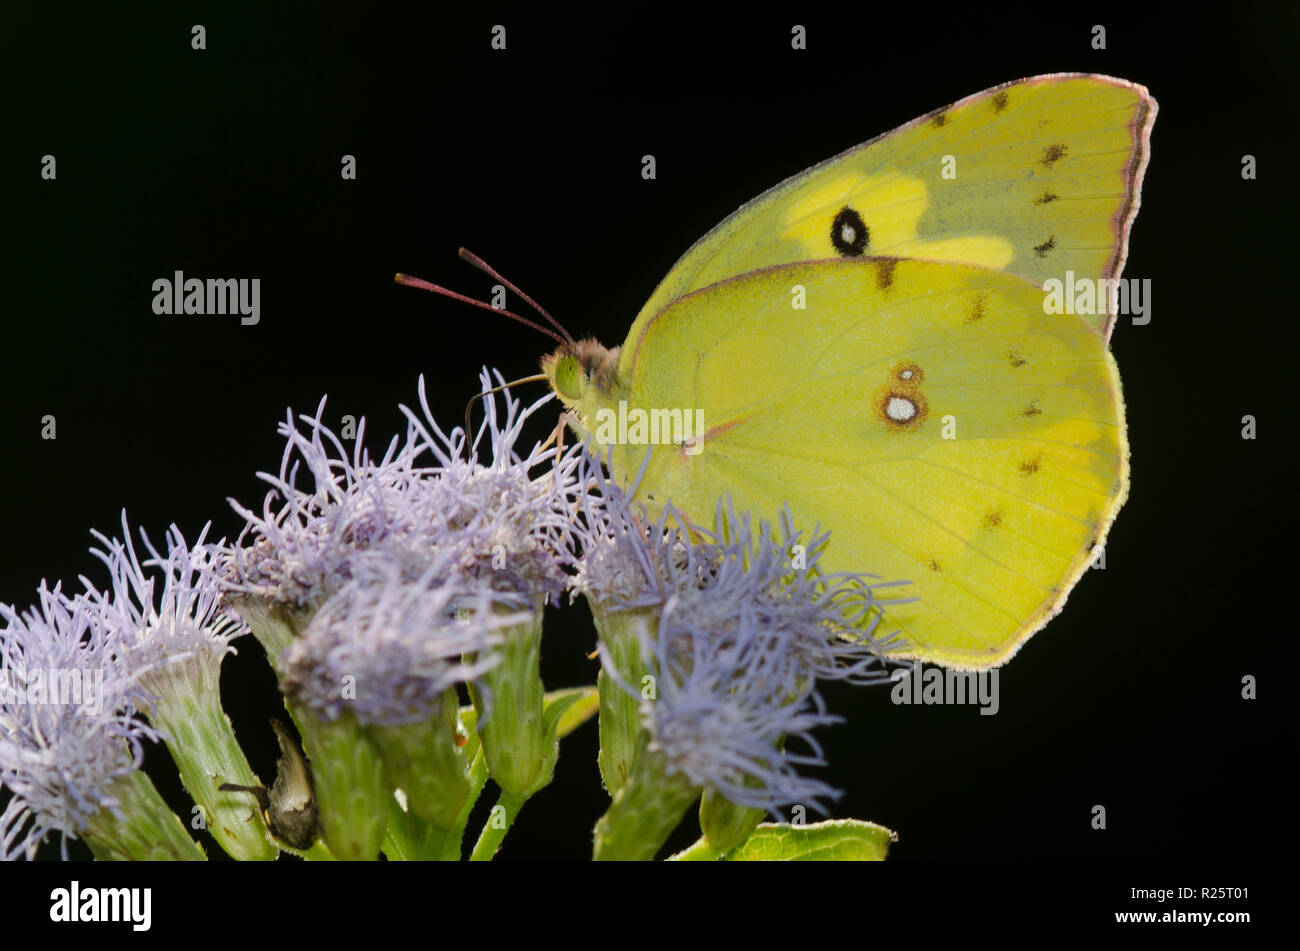 Sưu tập Bộ cánh vảy 3 - Page 16 Southern-dogface-zerene-cesonia-on-mist-flower-conoclinium-sp-back-lit-to-show-dogface-R25T01